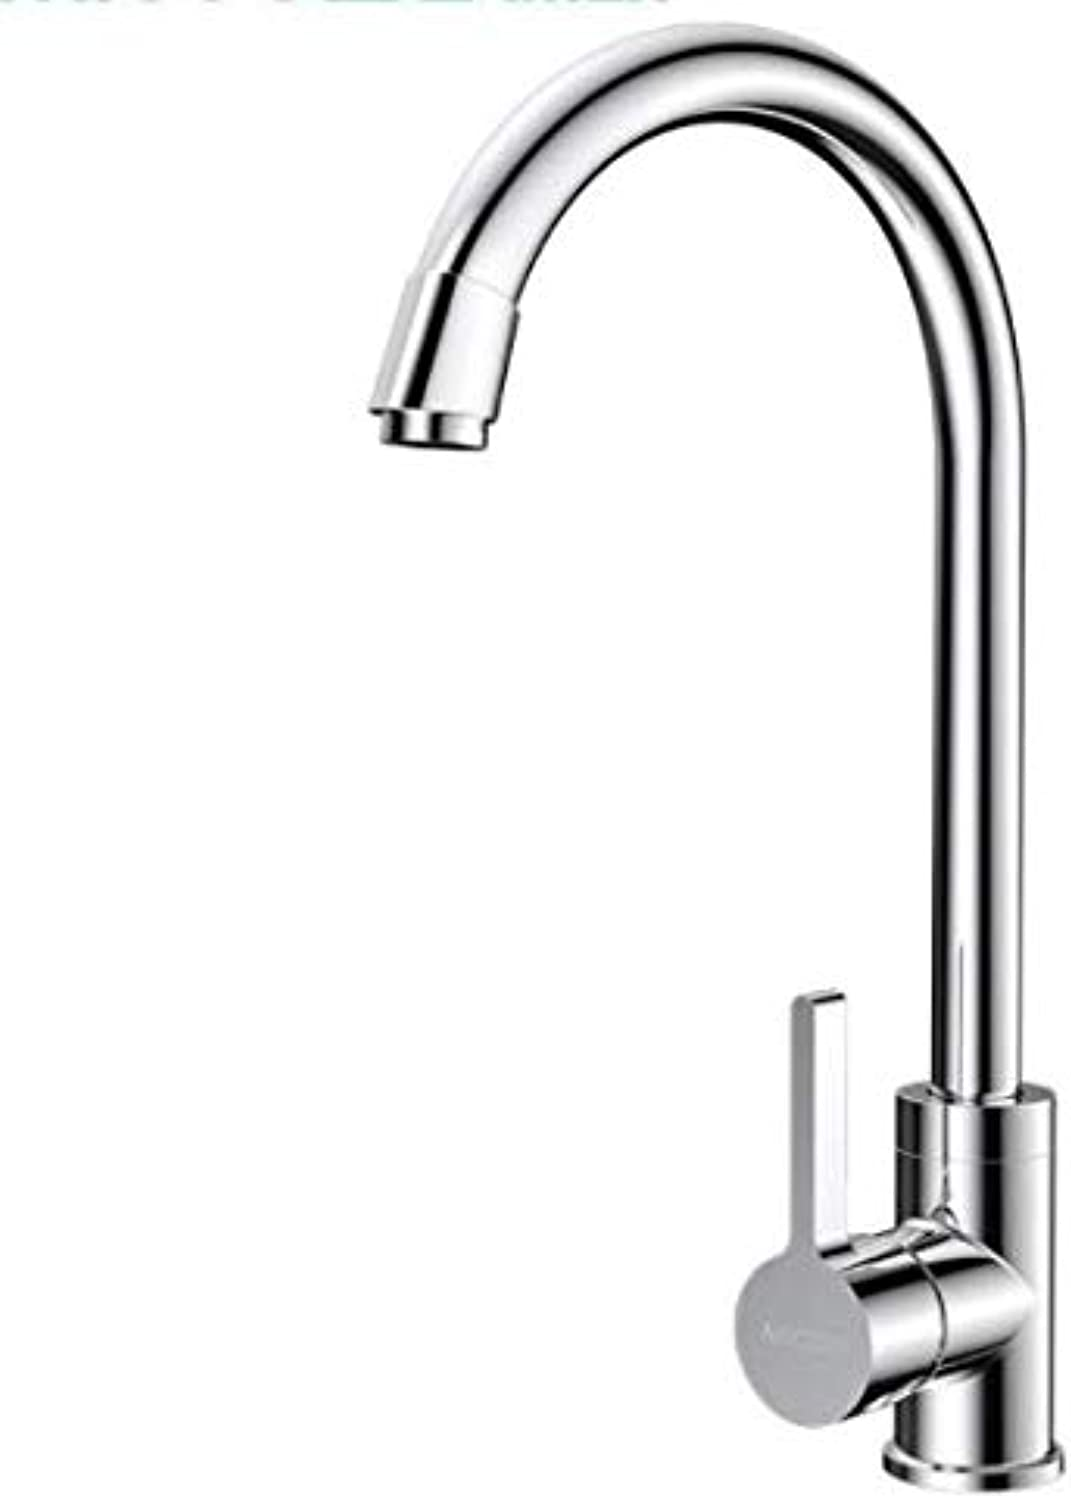 Counter Drinking Designer Arch Cool and Hot Water Kitchen Faucet Sink Faucet Dishwasher Faucet Copper Face Basin Faucet